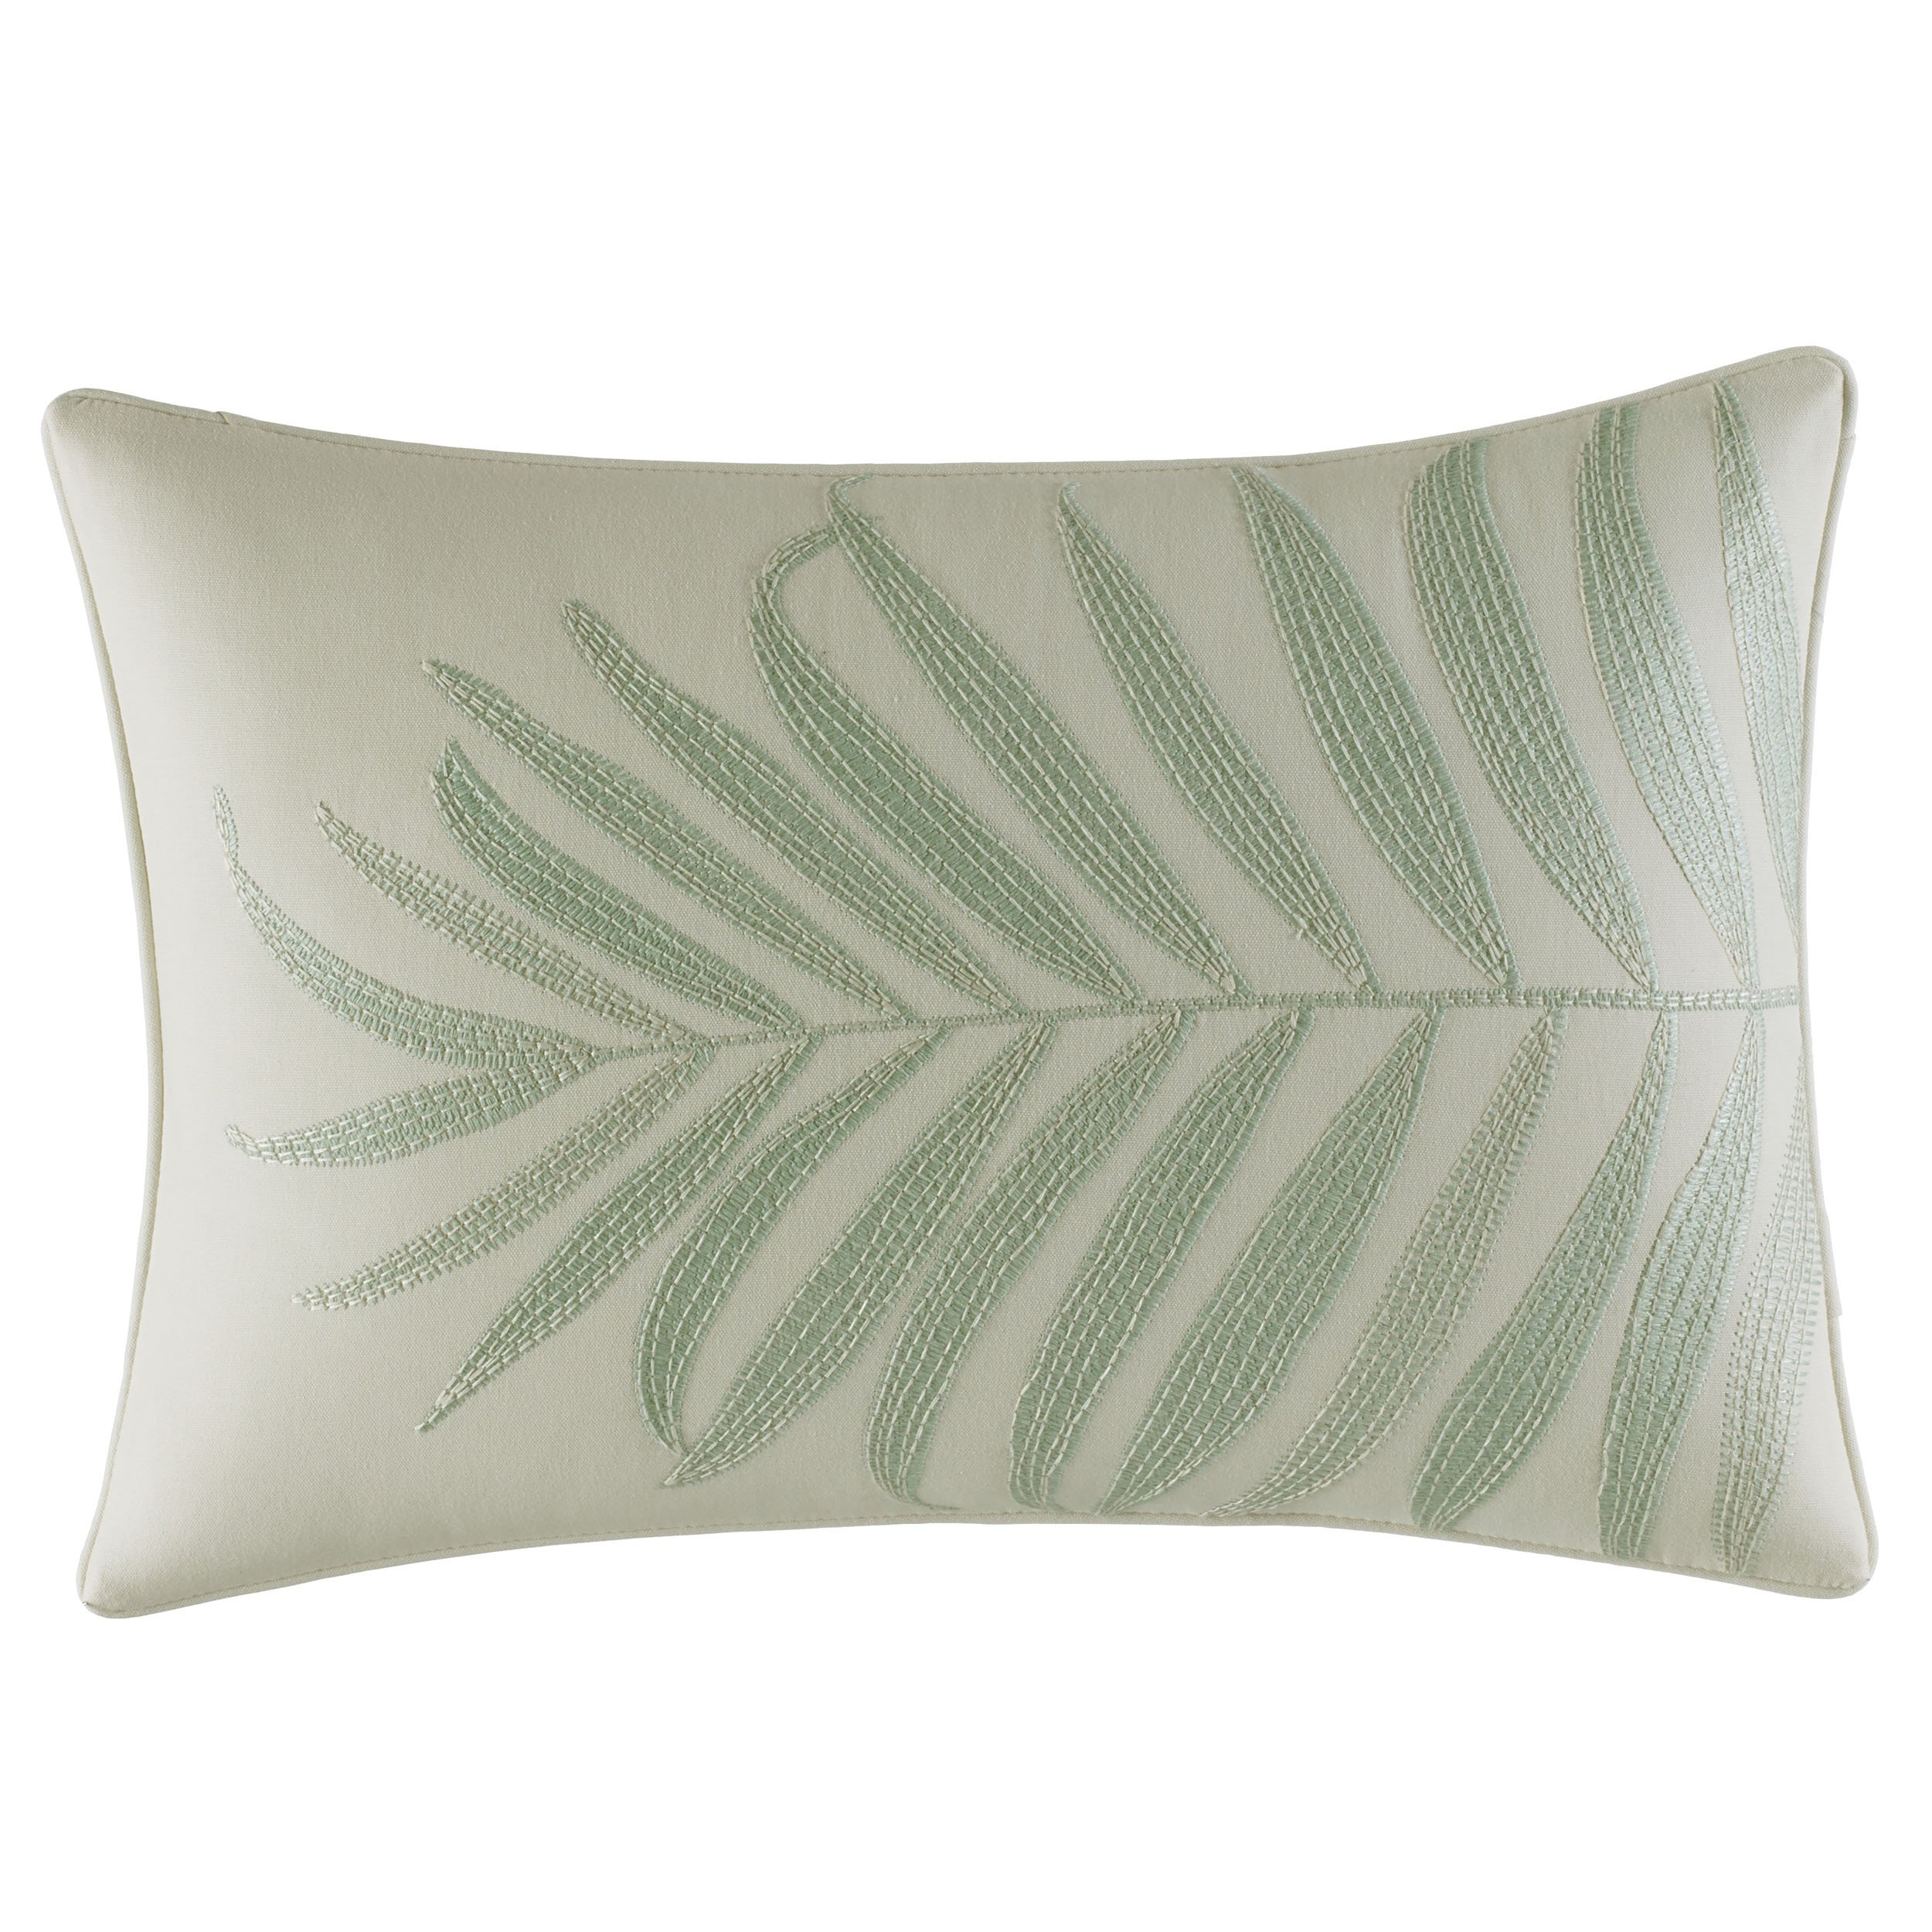 Tommy Bahama Abacos Throw Pillow, 14x20, Turquoise-Aqua